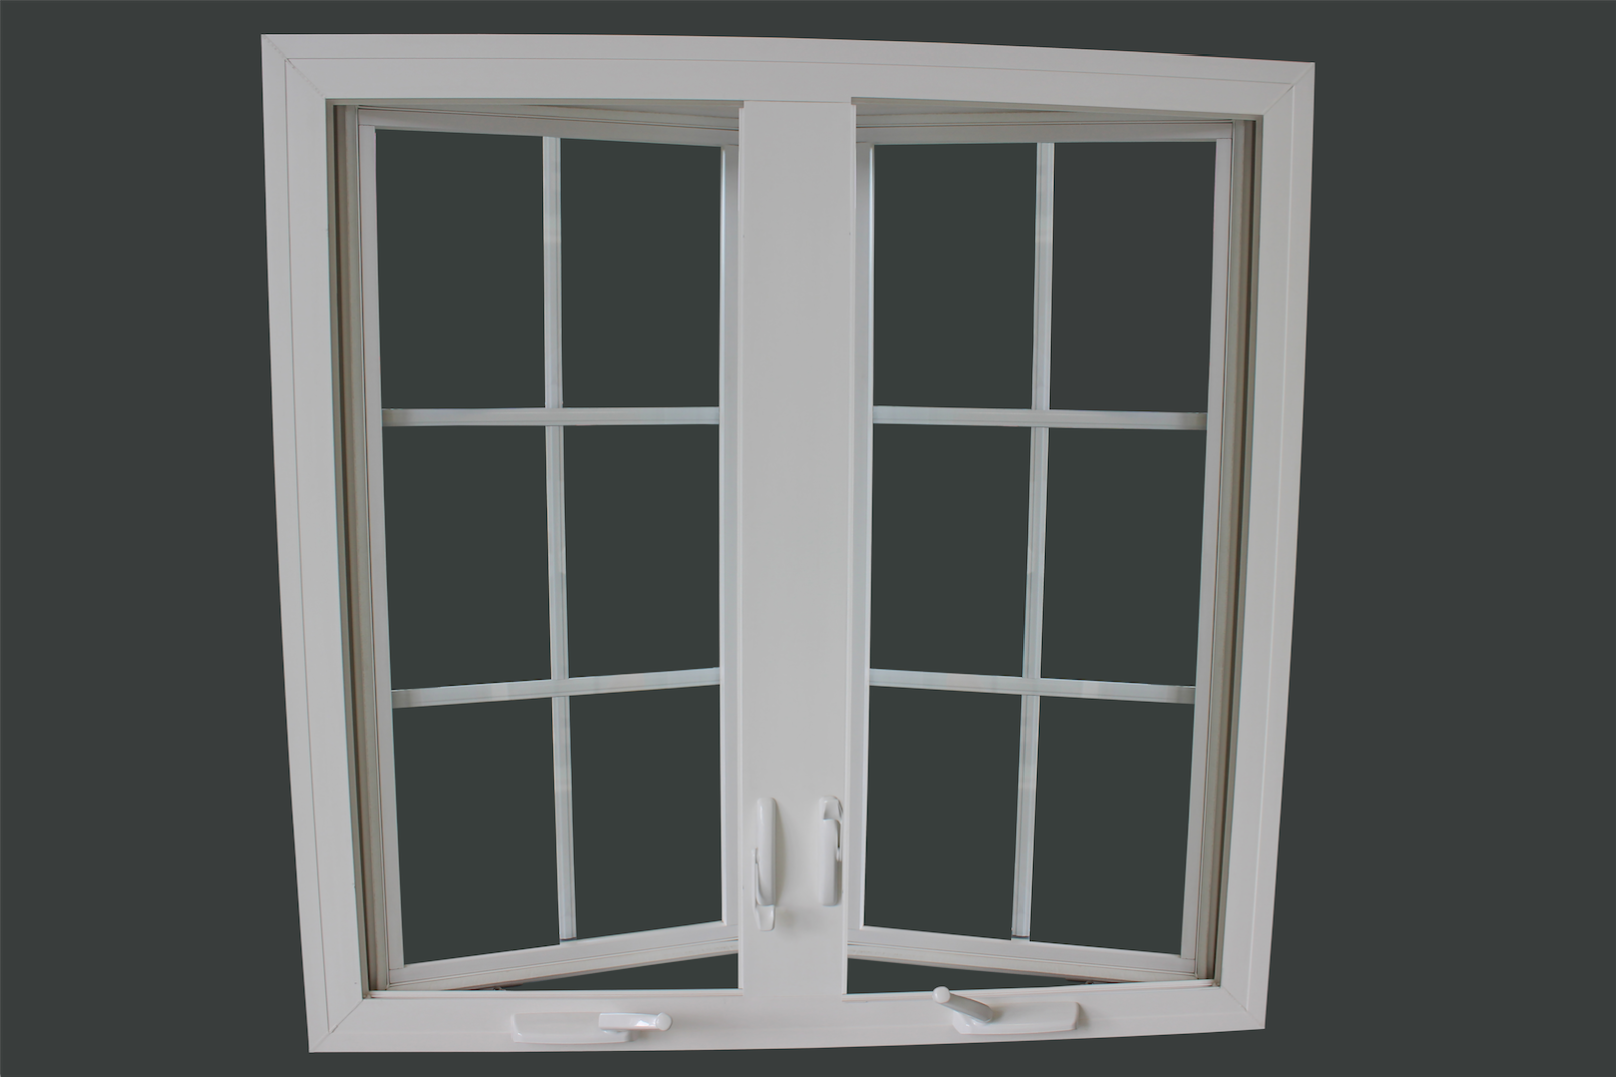 Replacement casement windows specialty wholesale supply for Wholesale windows